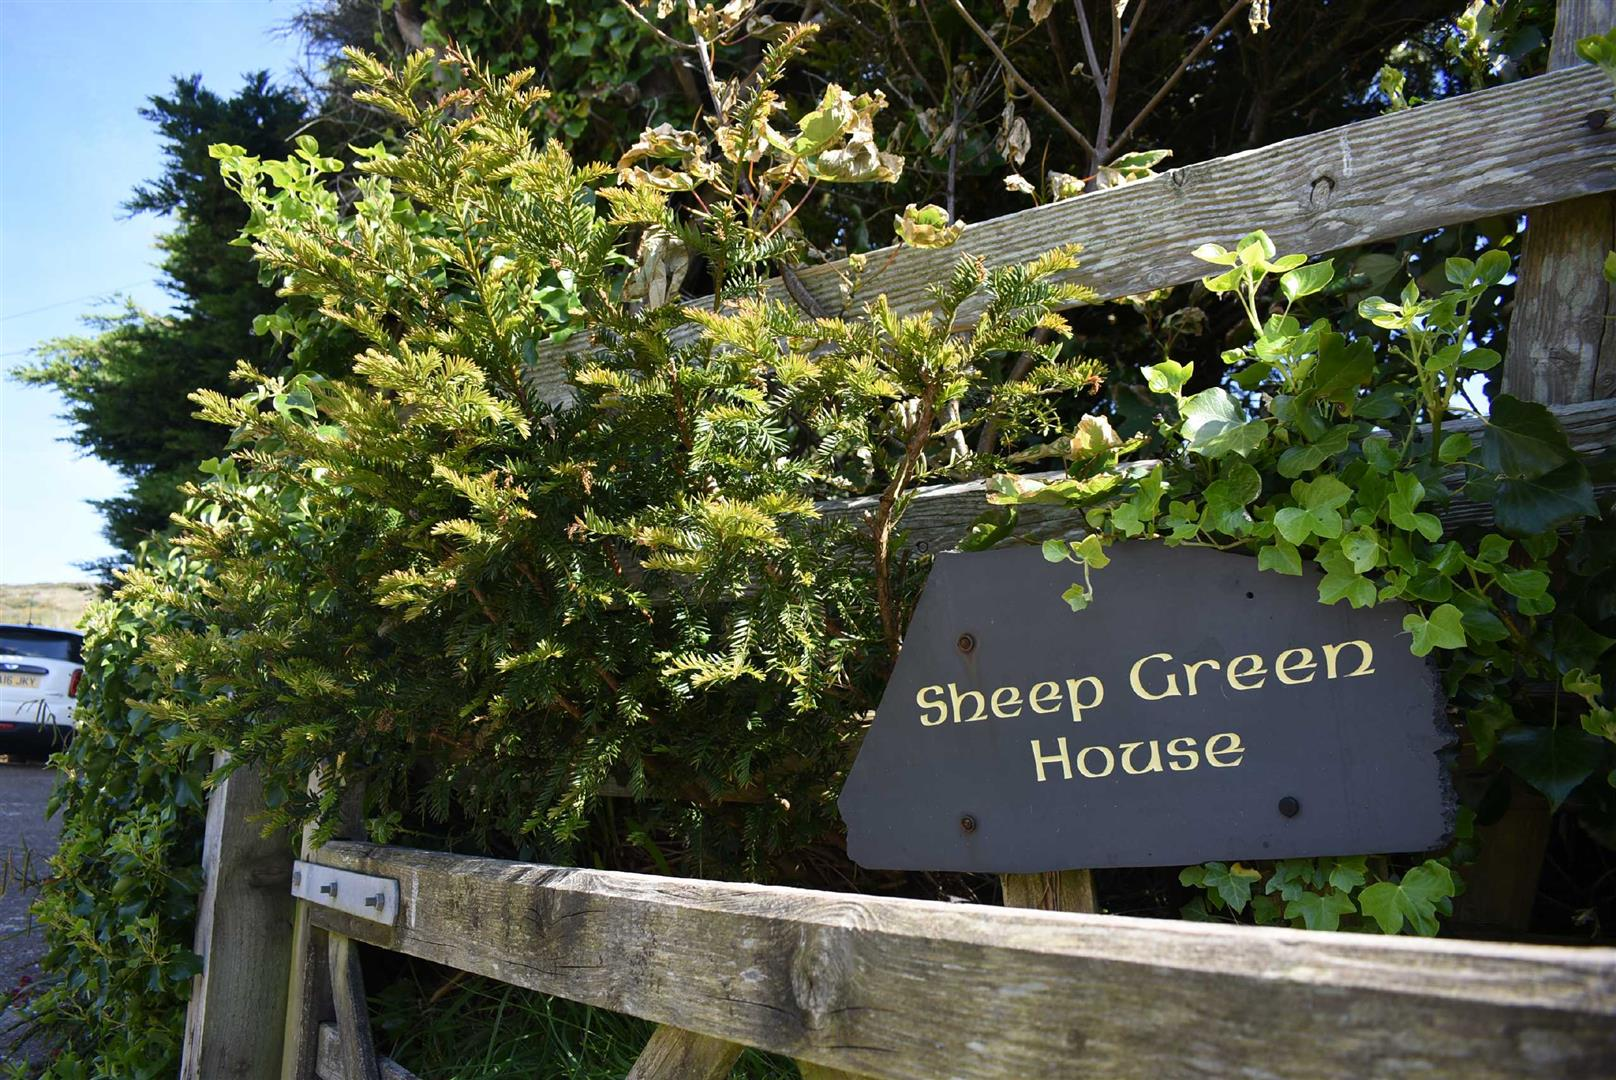 Sheep Green House, Middleton, Swansea, SA3 1PJ